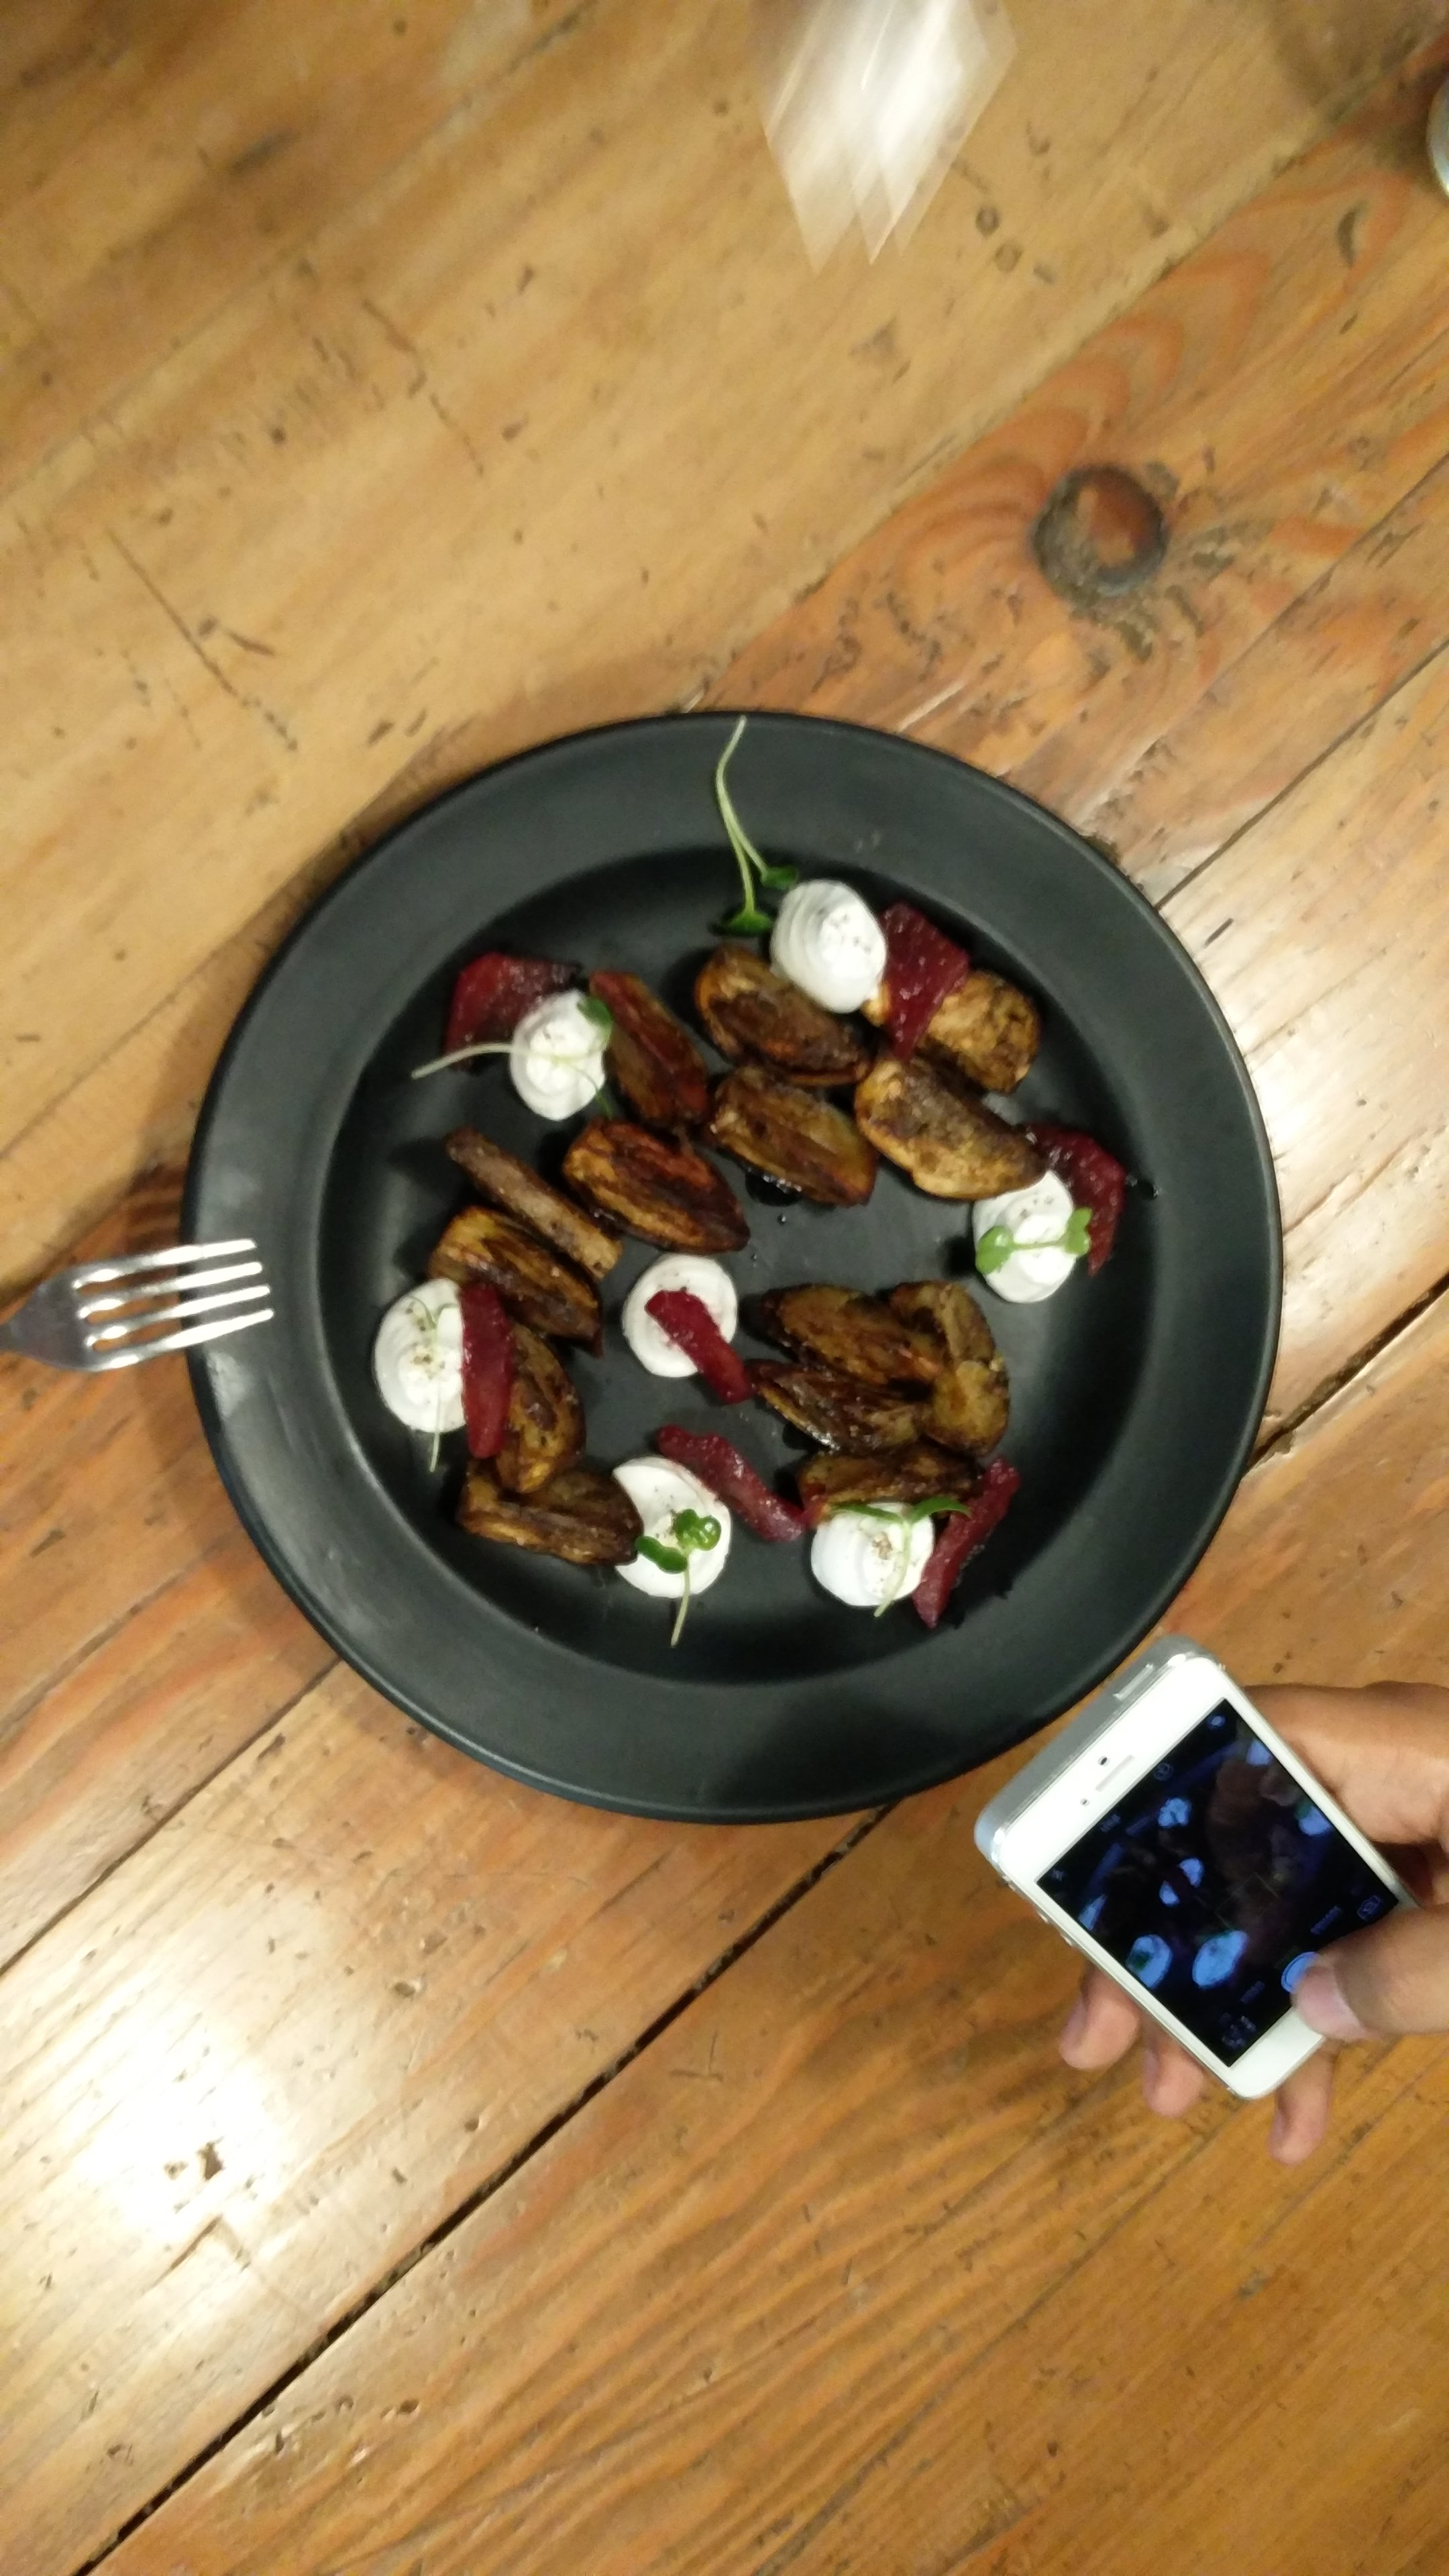 The eggplants we foraged were quite tiny. Chef Agnib did this quick dish of pan-fried eggplant slices topped with a goat's cheese mousse and some truffle oil. A simple and decadent dish where the eggplants played the perfect role in bringing all the elements together.  - Uzair